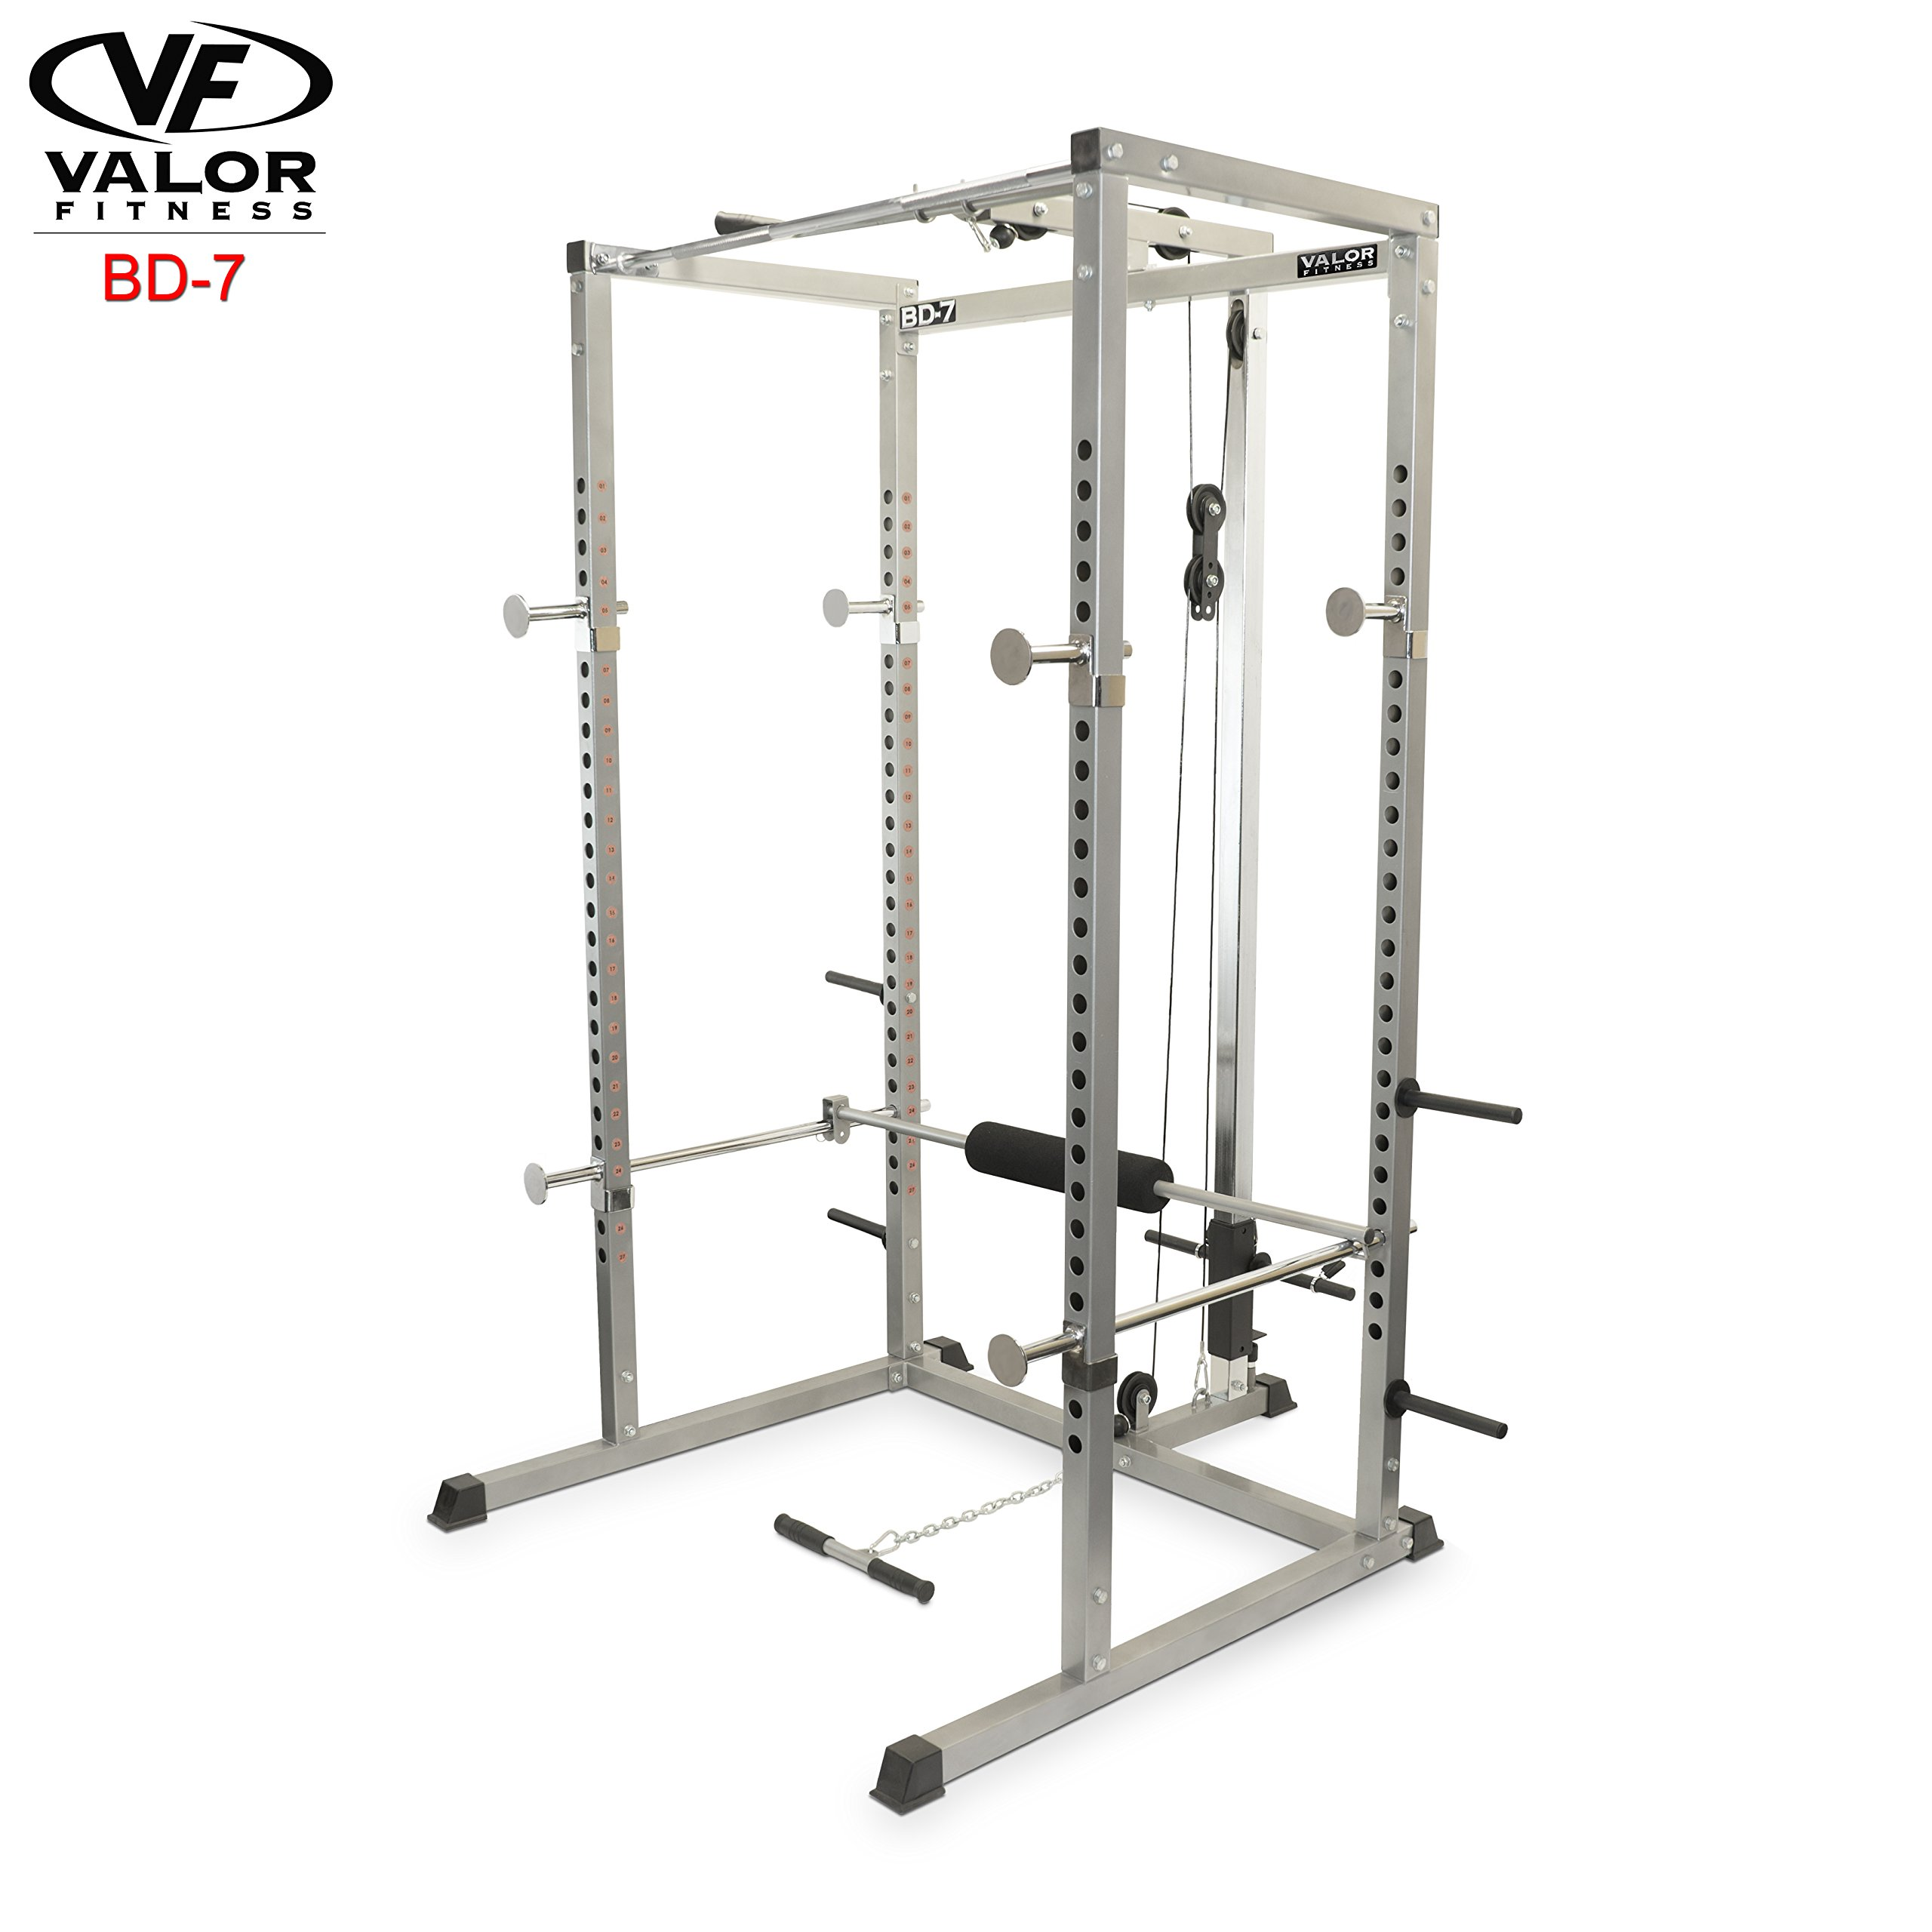 Valor Fitness BD-7 Power Rack with Lat Pull Attachment by Valor Fitness